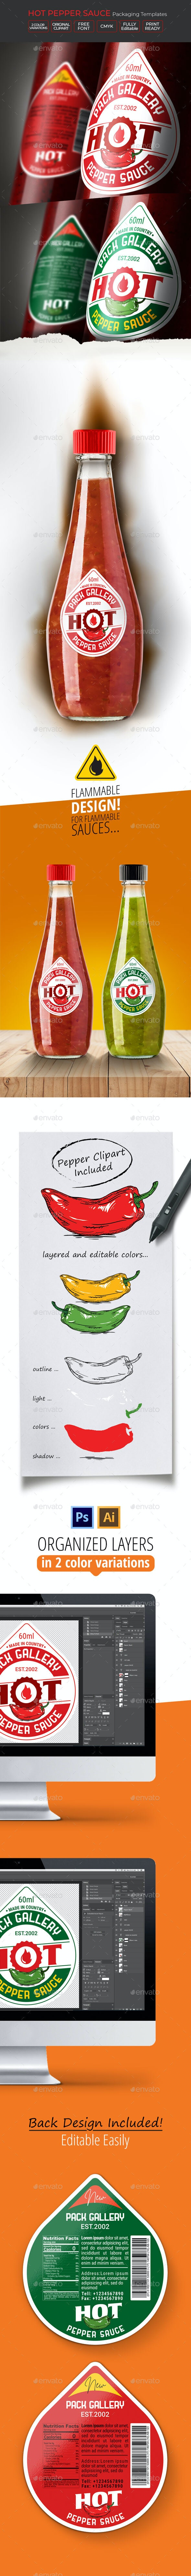 Hot Pepper Sauce Label - 2 Color Variations - Packaging Print Templates